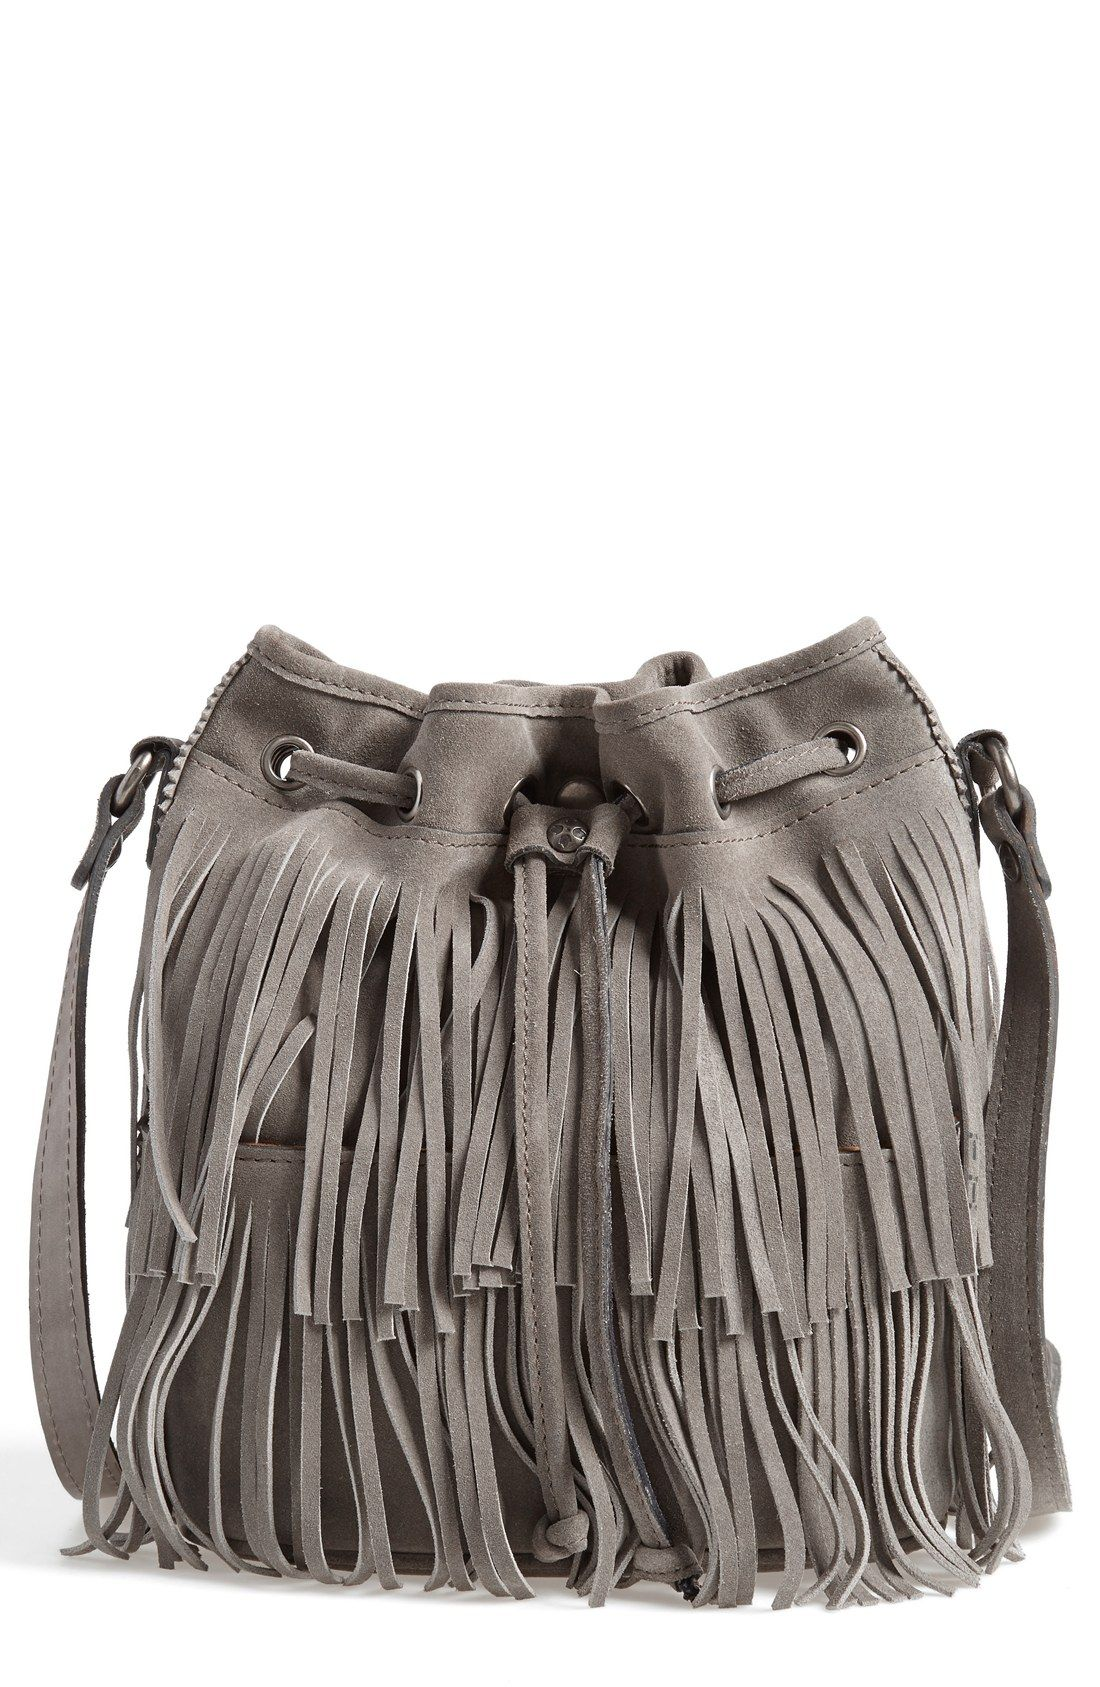 A Lush Fringe Bag Is The Perfect Fall Accessory Can Use This Gray Bucket For Class Or Just Out And About